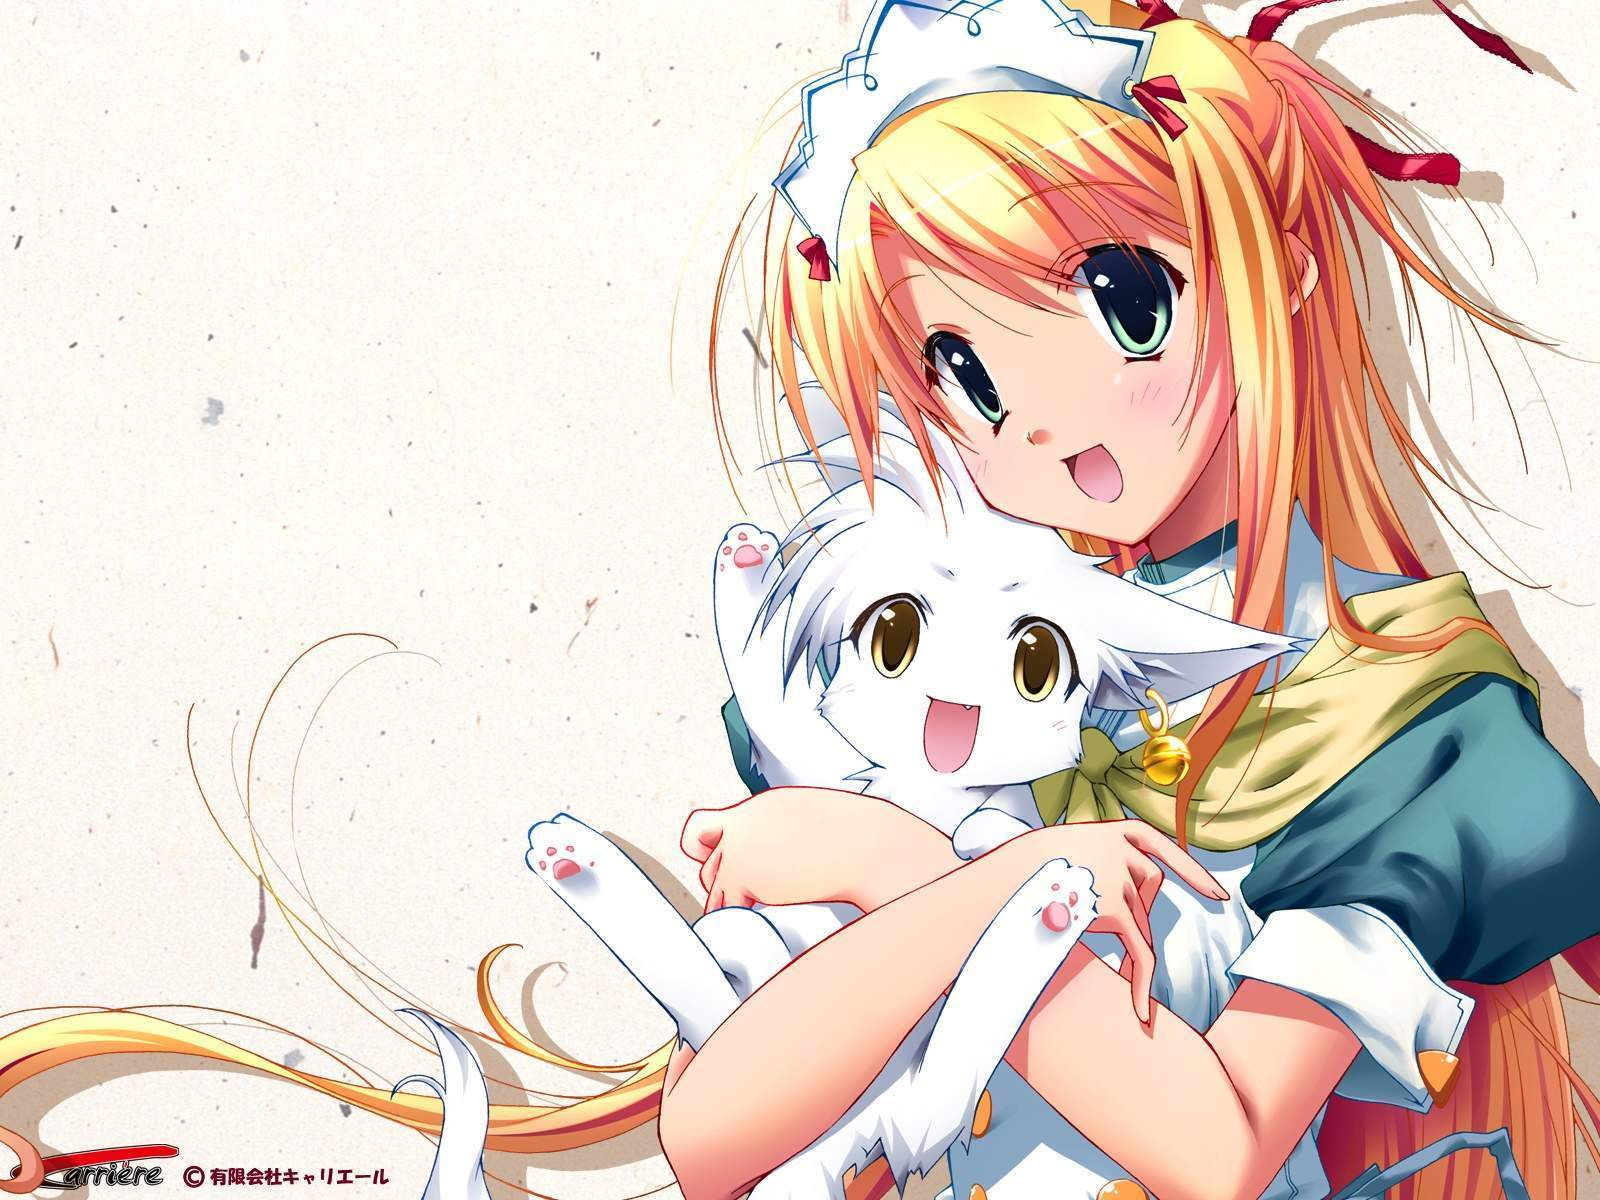 anime_wallpaper - Anime Wallpaper (9648857) - Fanpop